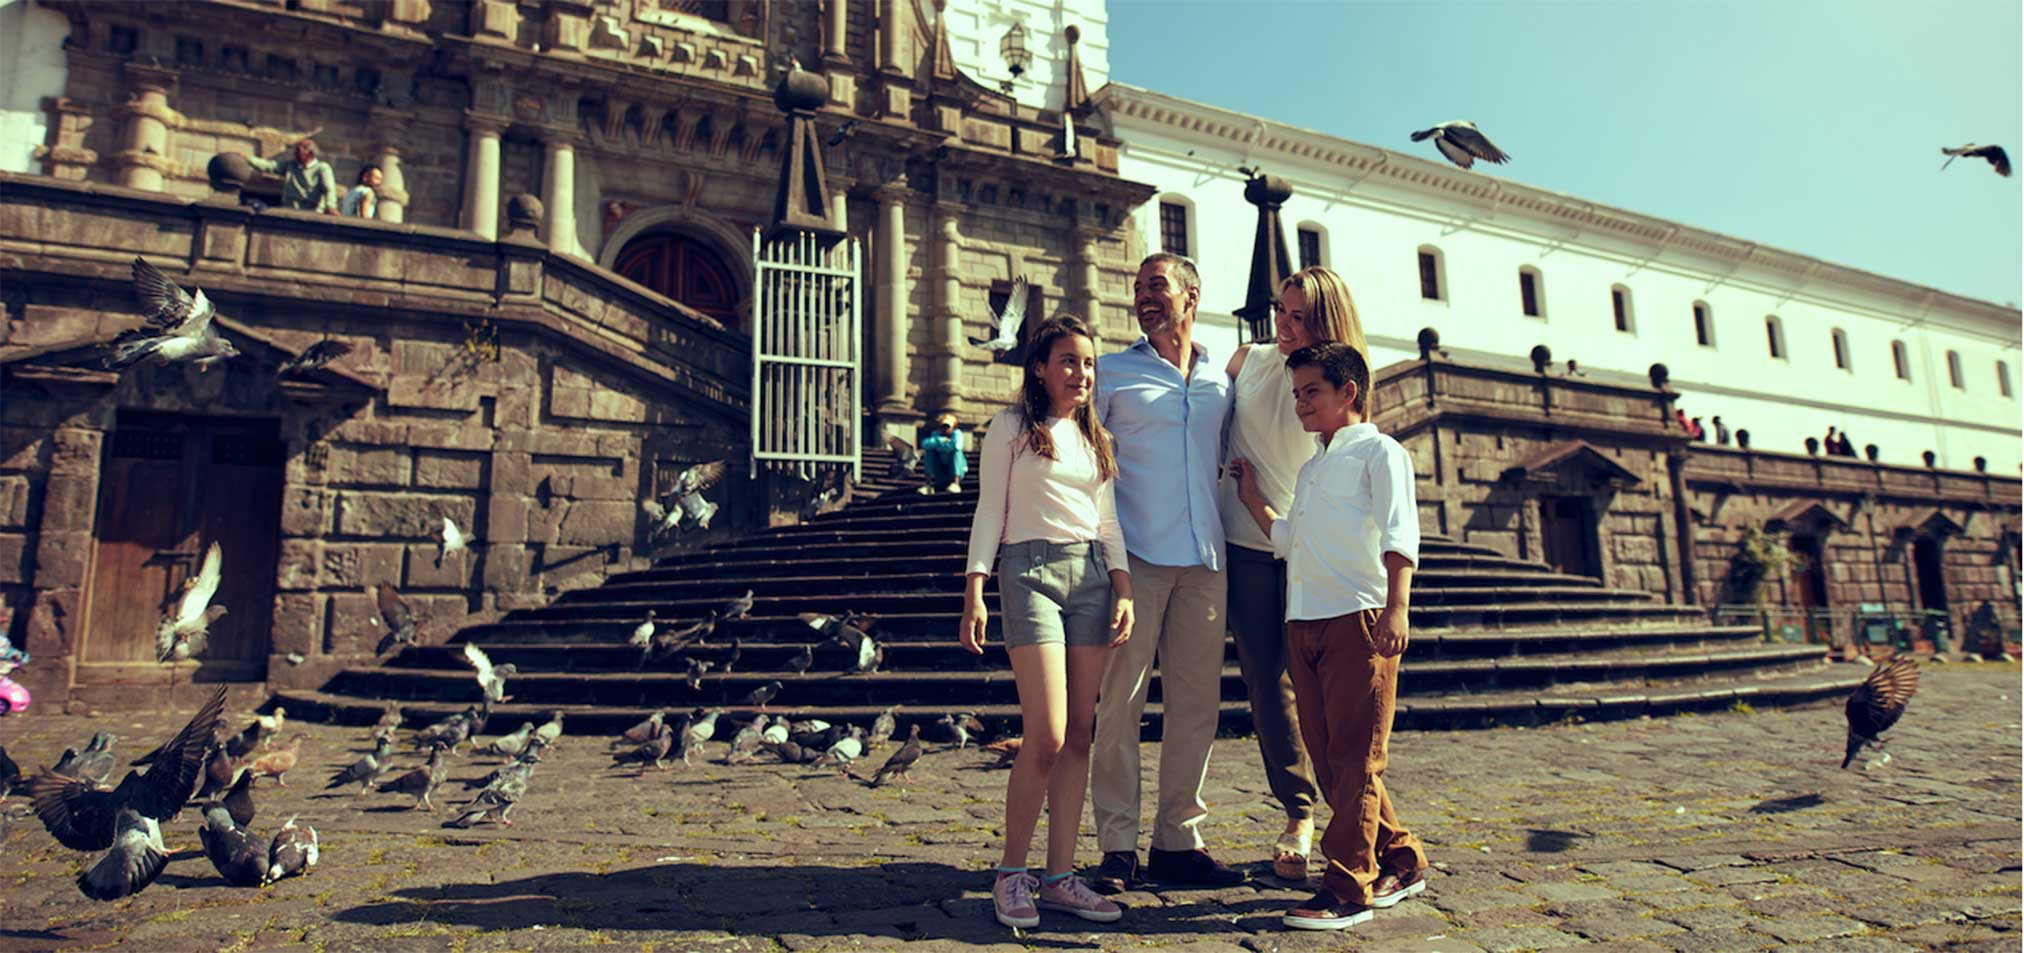 Family at Plaza San Francisco in Quito